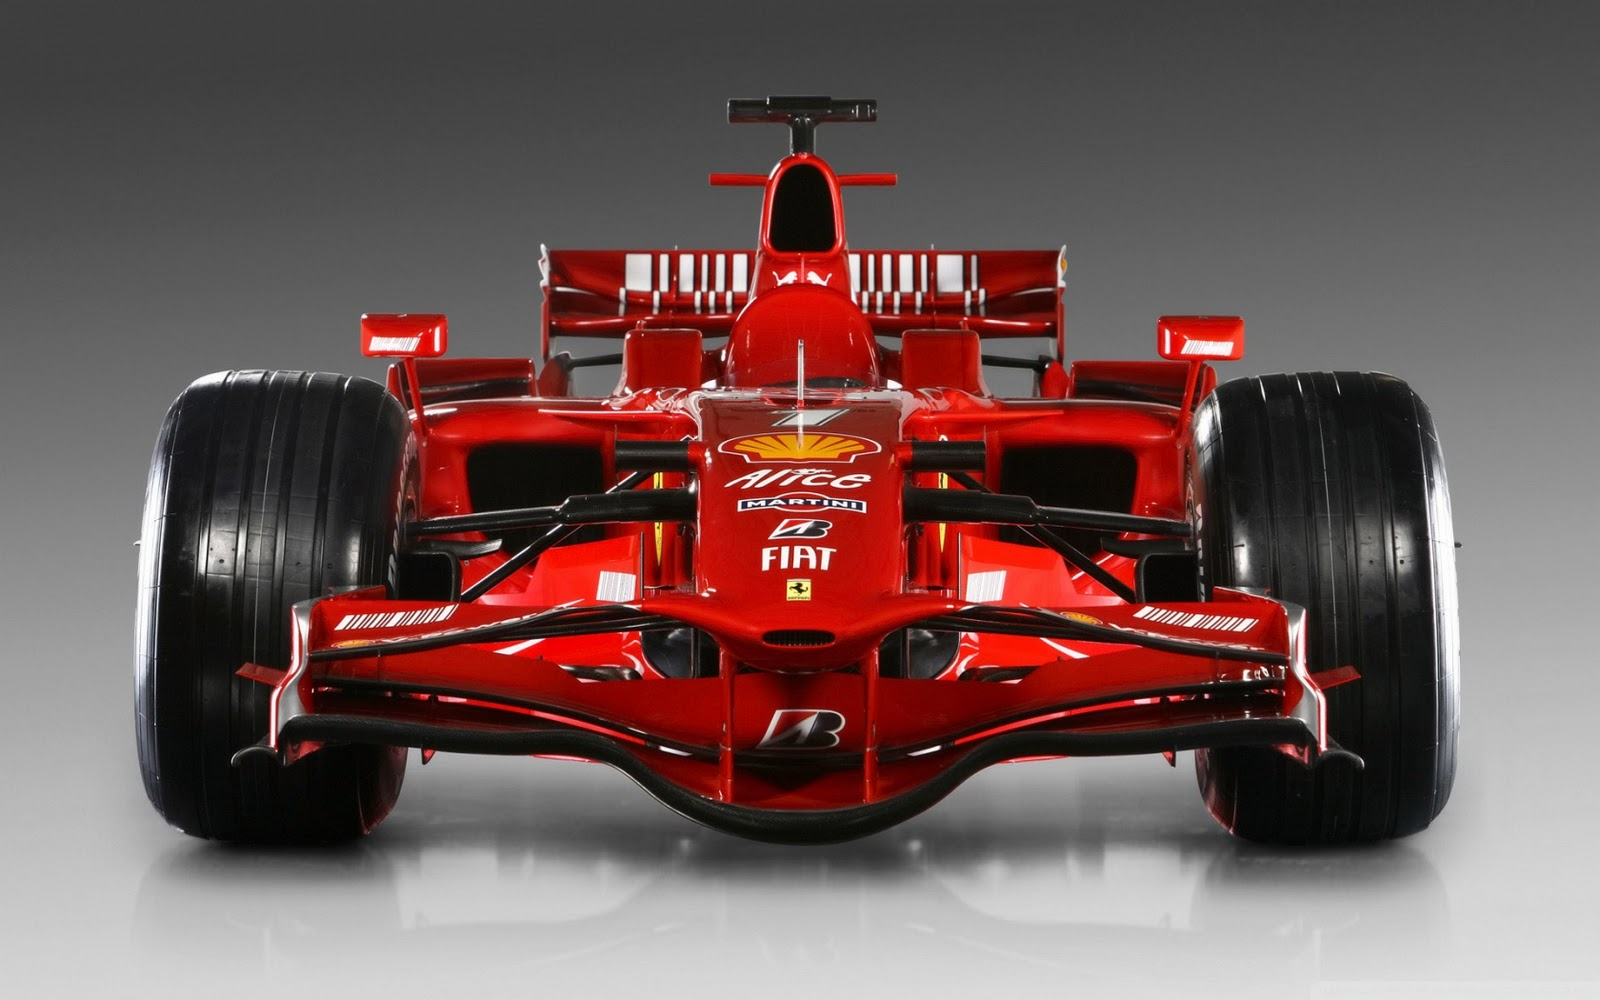 http://2.bp.blogspot.com/_RAlP3BmEW1Q/TQYQBJDkonI/AAAAAAAACaQ/3WM_oItoSKw/s1600/The-best-top-desktop-formula-1-wallpapers-8.jpg